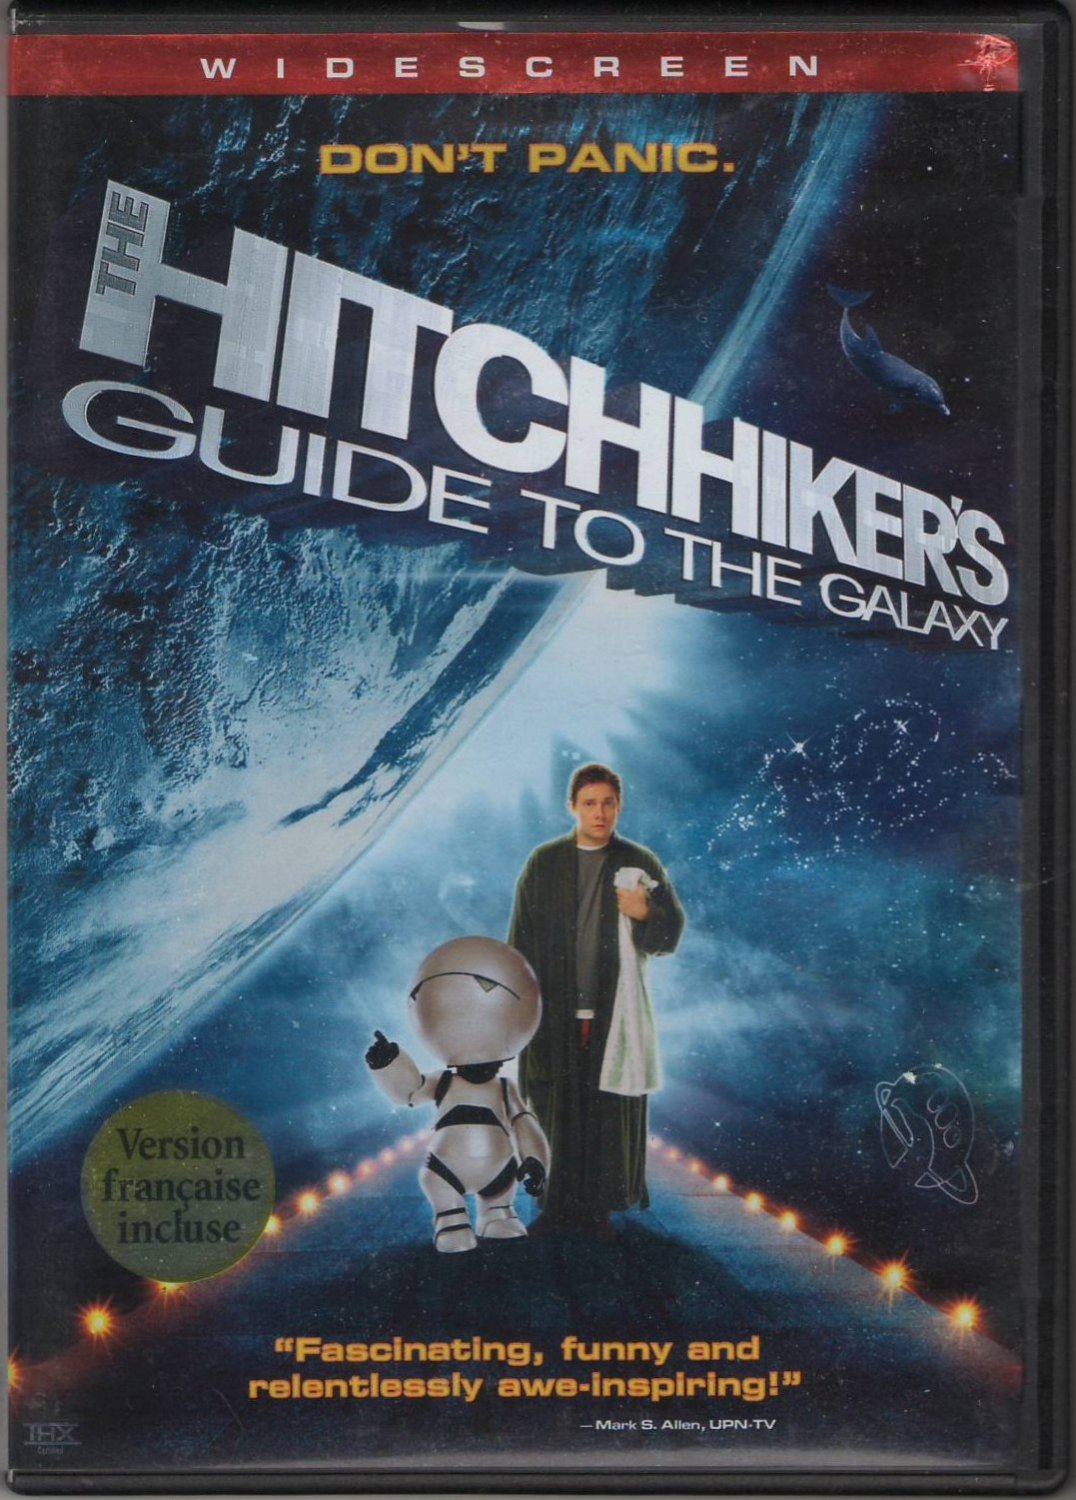 The Hitchhiker's Guide To The Galaxy Widescreen DVD PG Movie Region 1